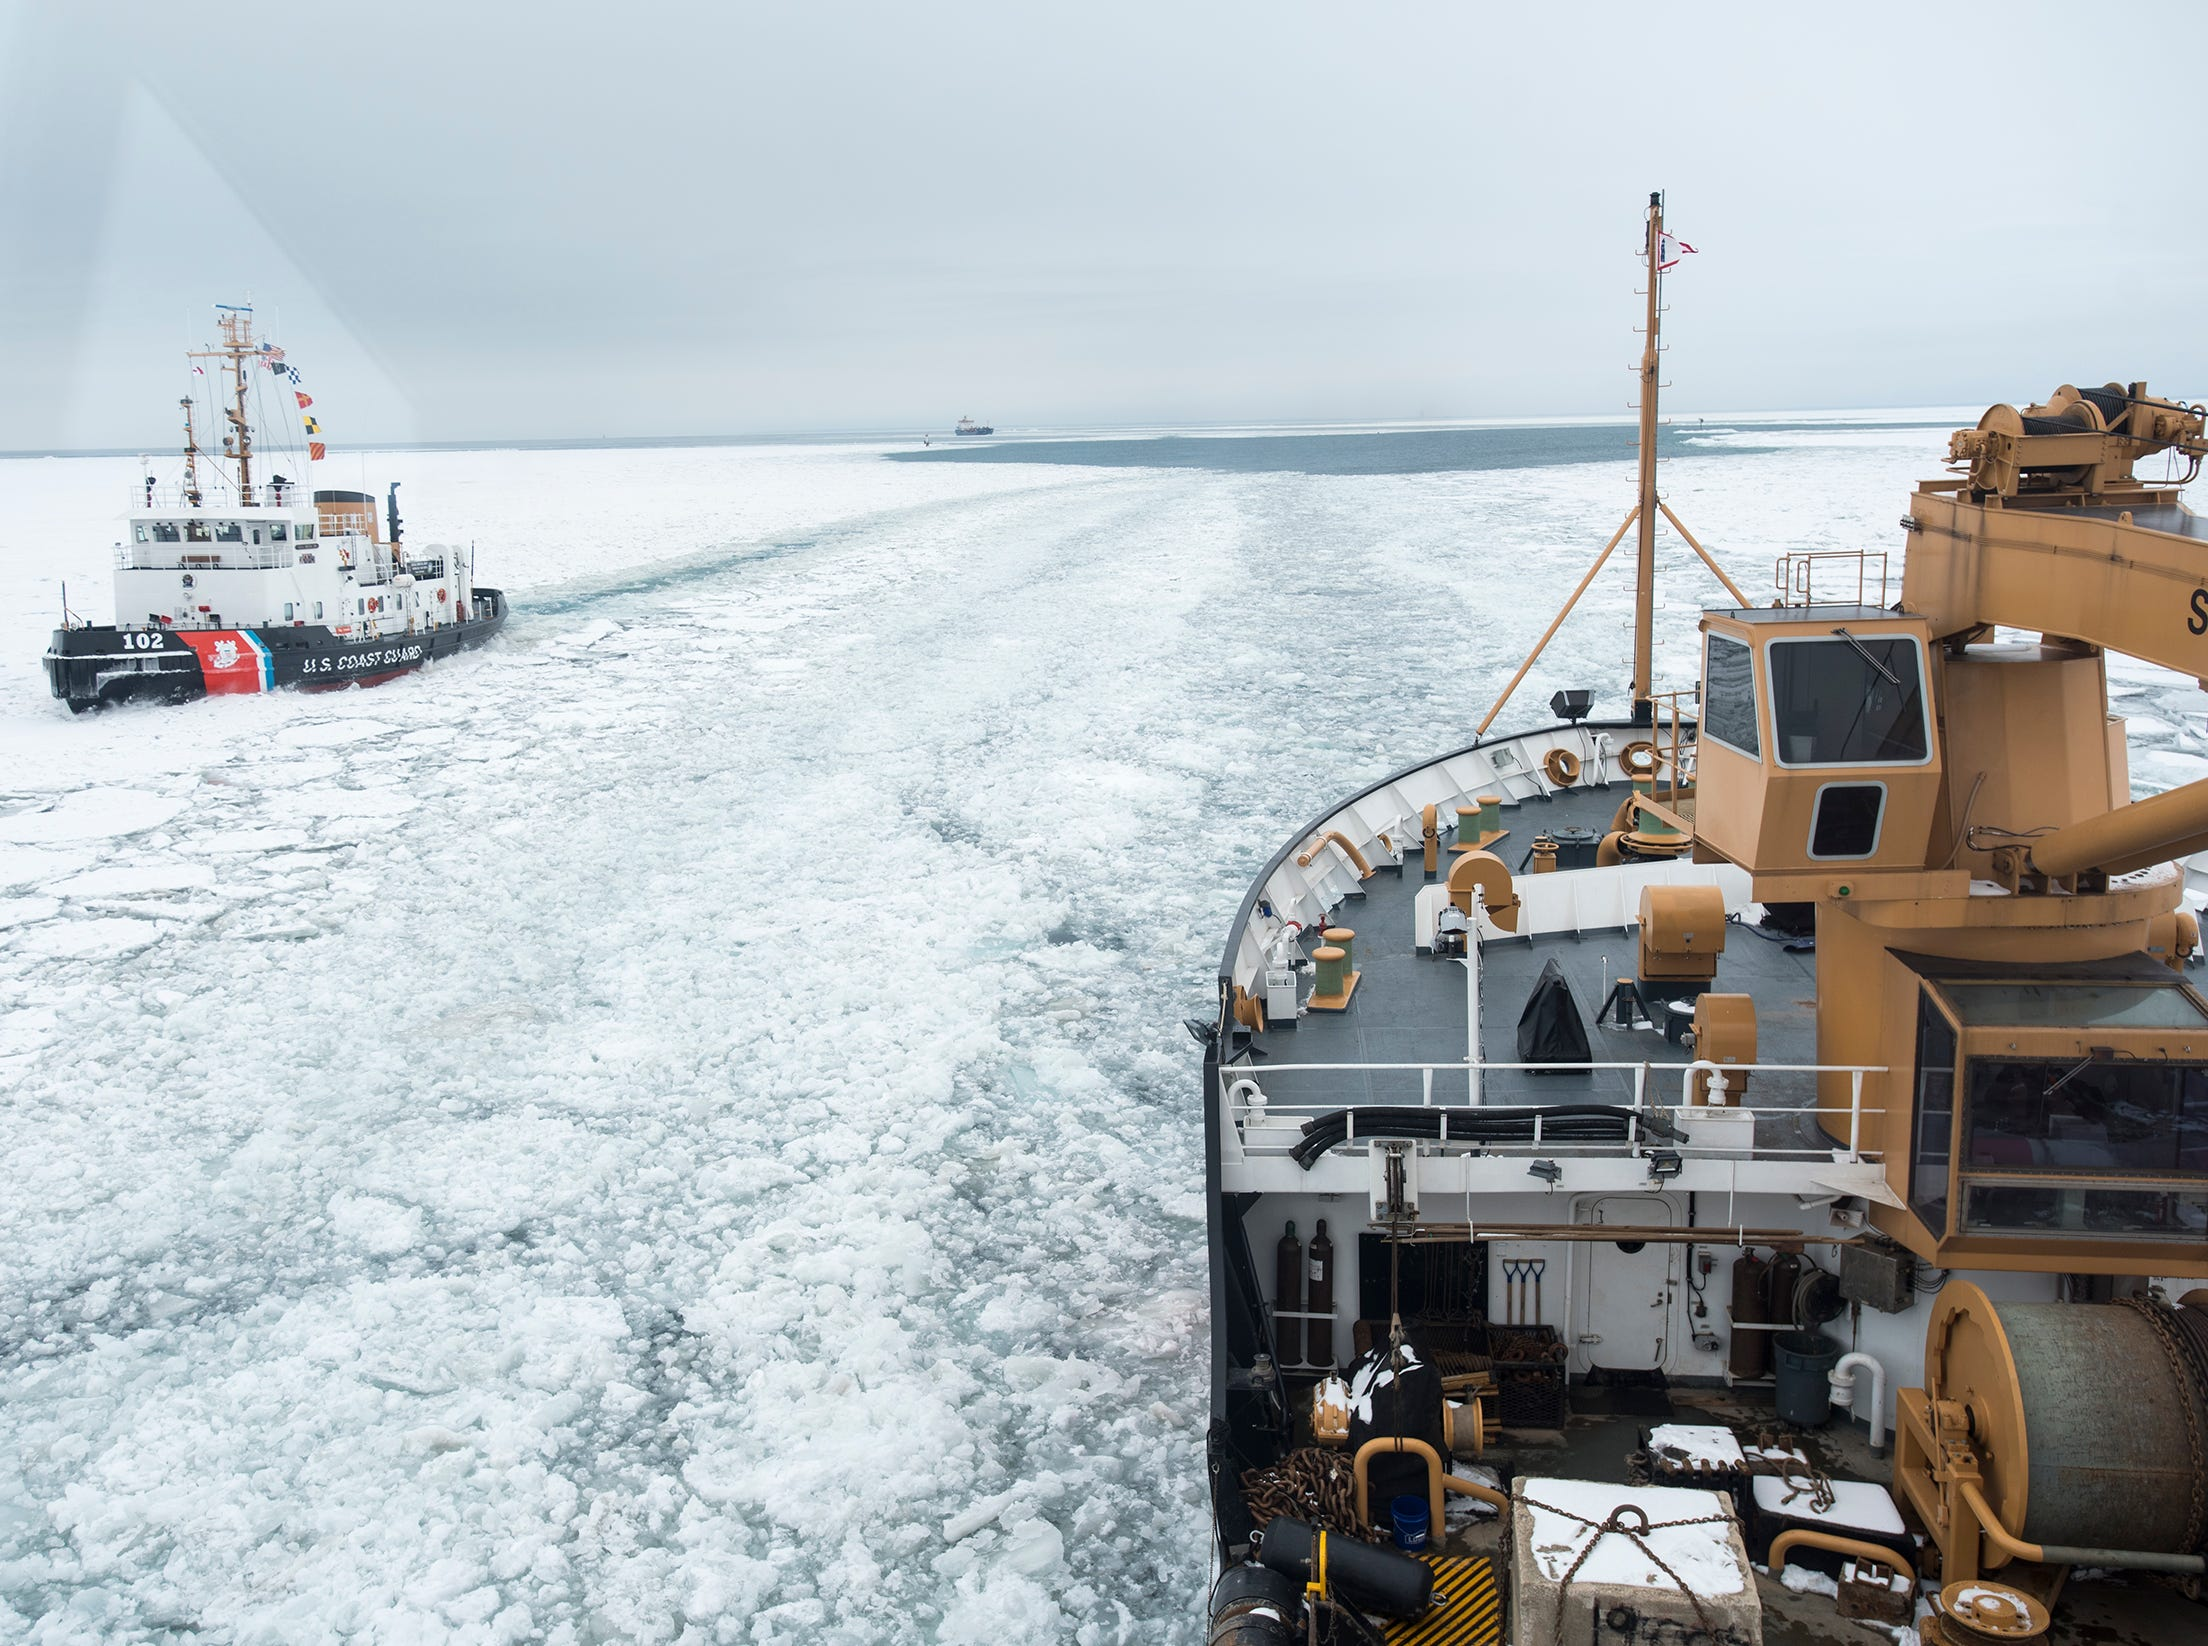 As the USCGC Bristol Bay passes the Hollyhock, the two ships exchange horns. That, Monacelli said, is called a Great Lakes Salute.